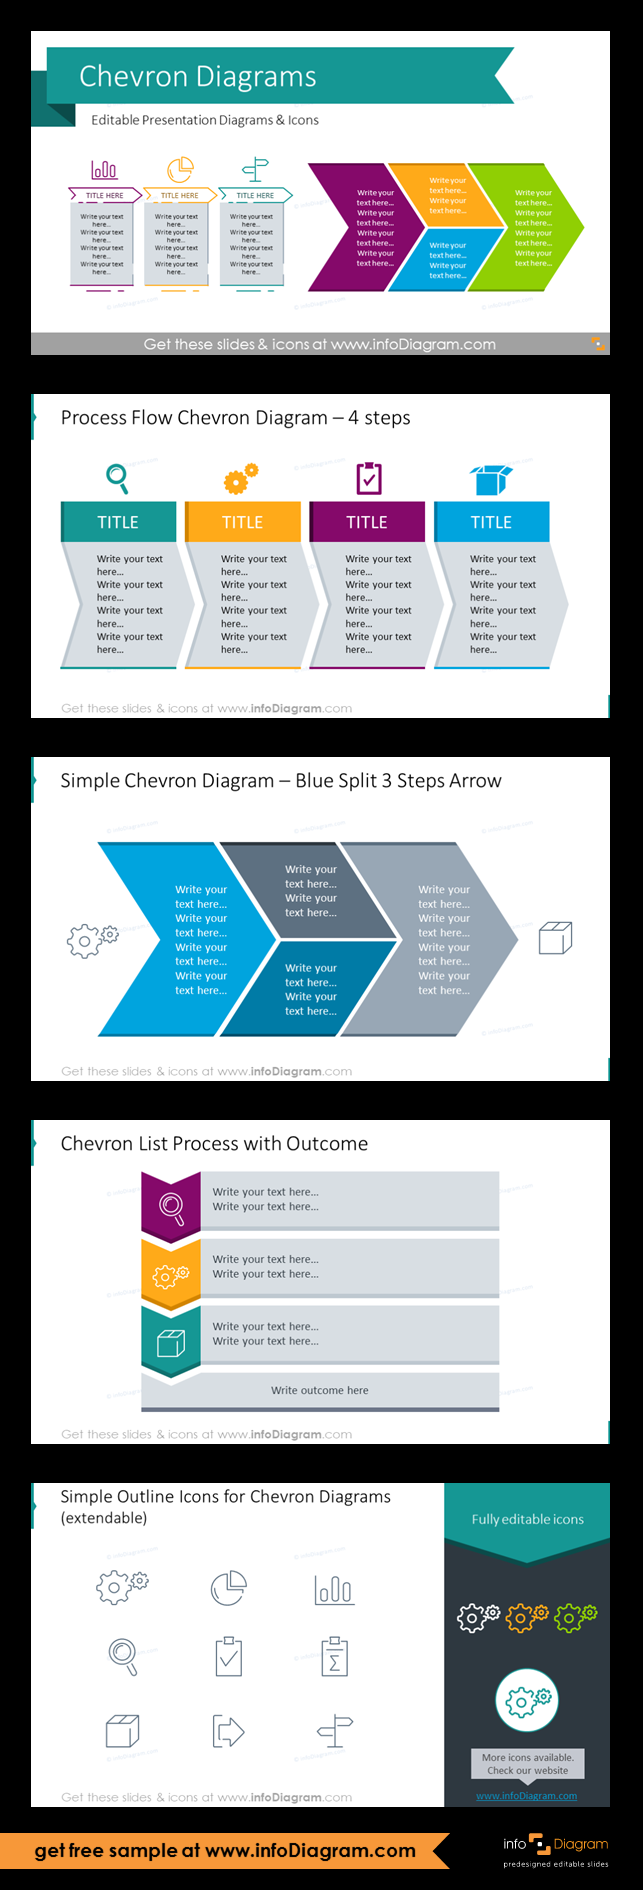 Chevron Timeline Diagrams Template Ppt Graphics Creative Process Flow Diagram Set Of Editable Powerpoint To Present Progress Steps Lists And Linear Processes